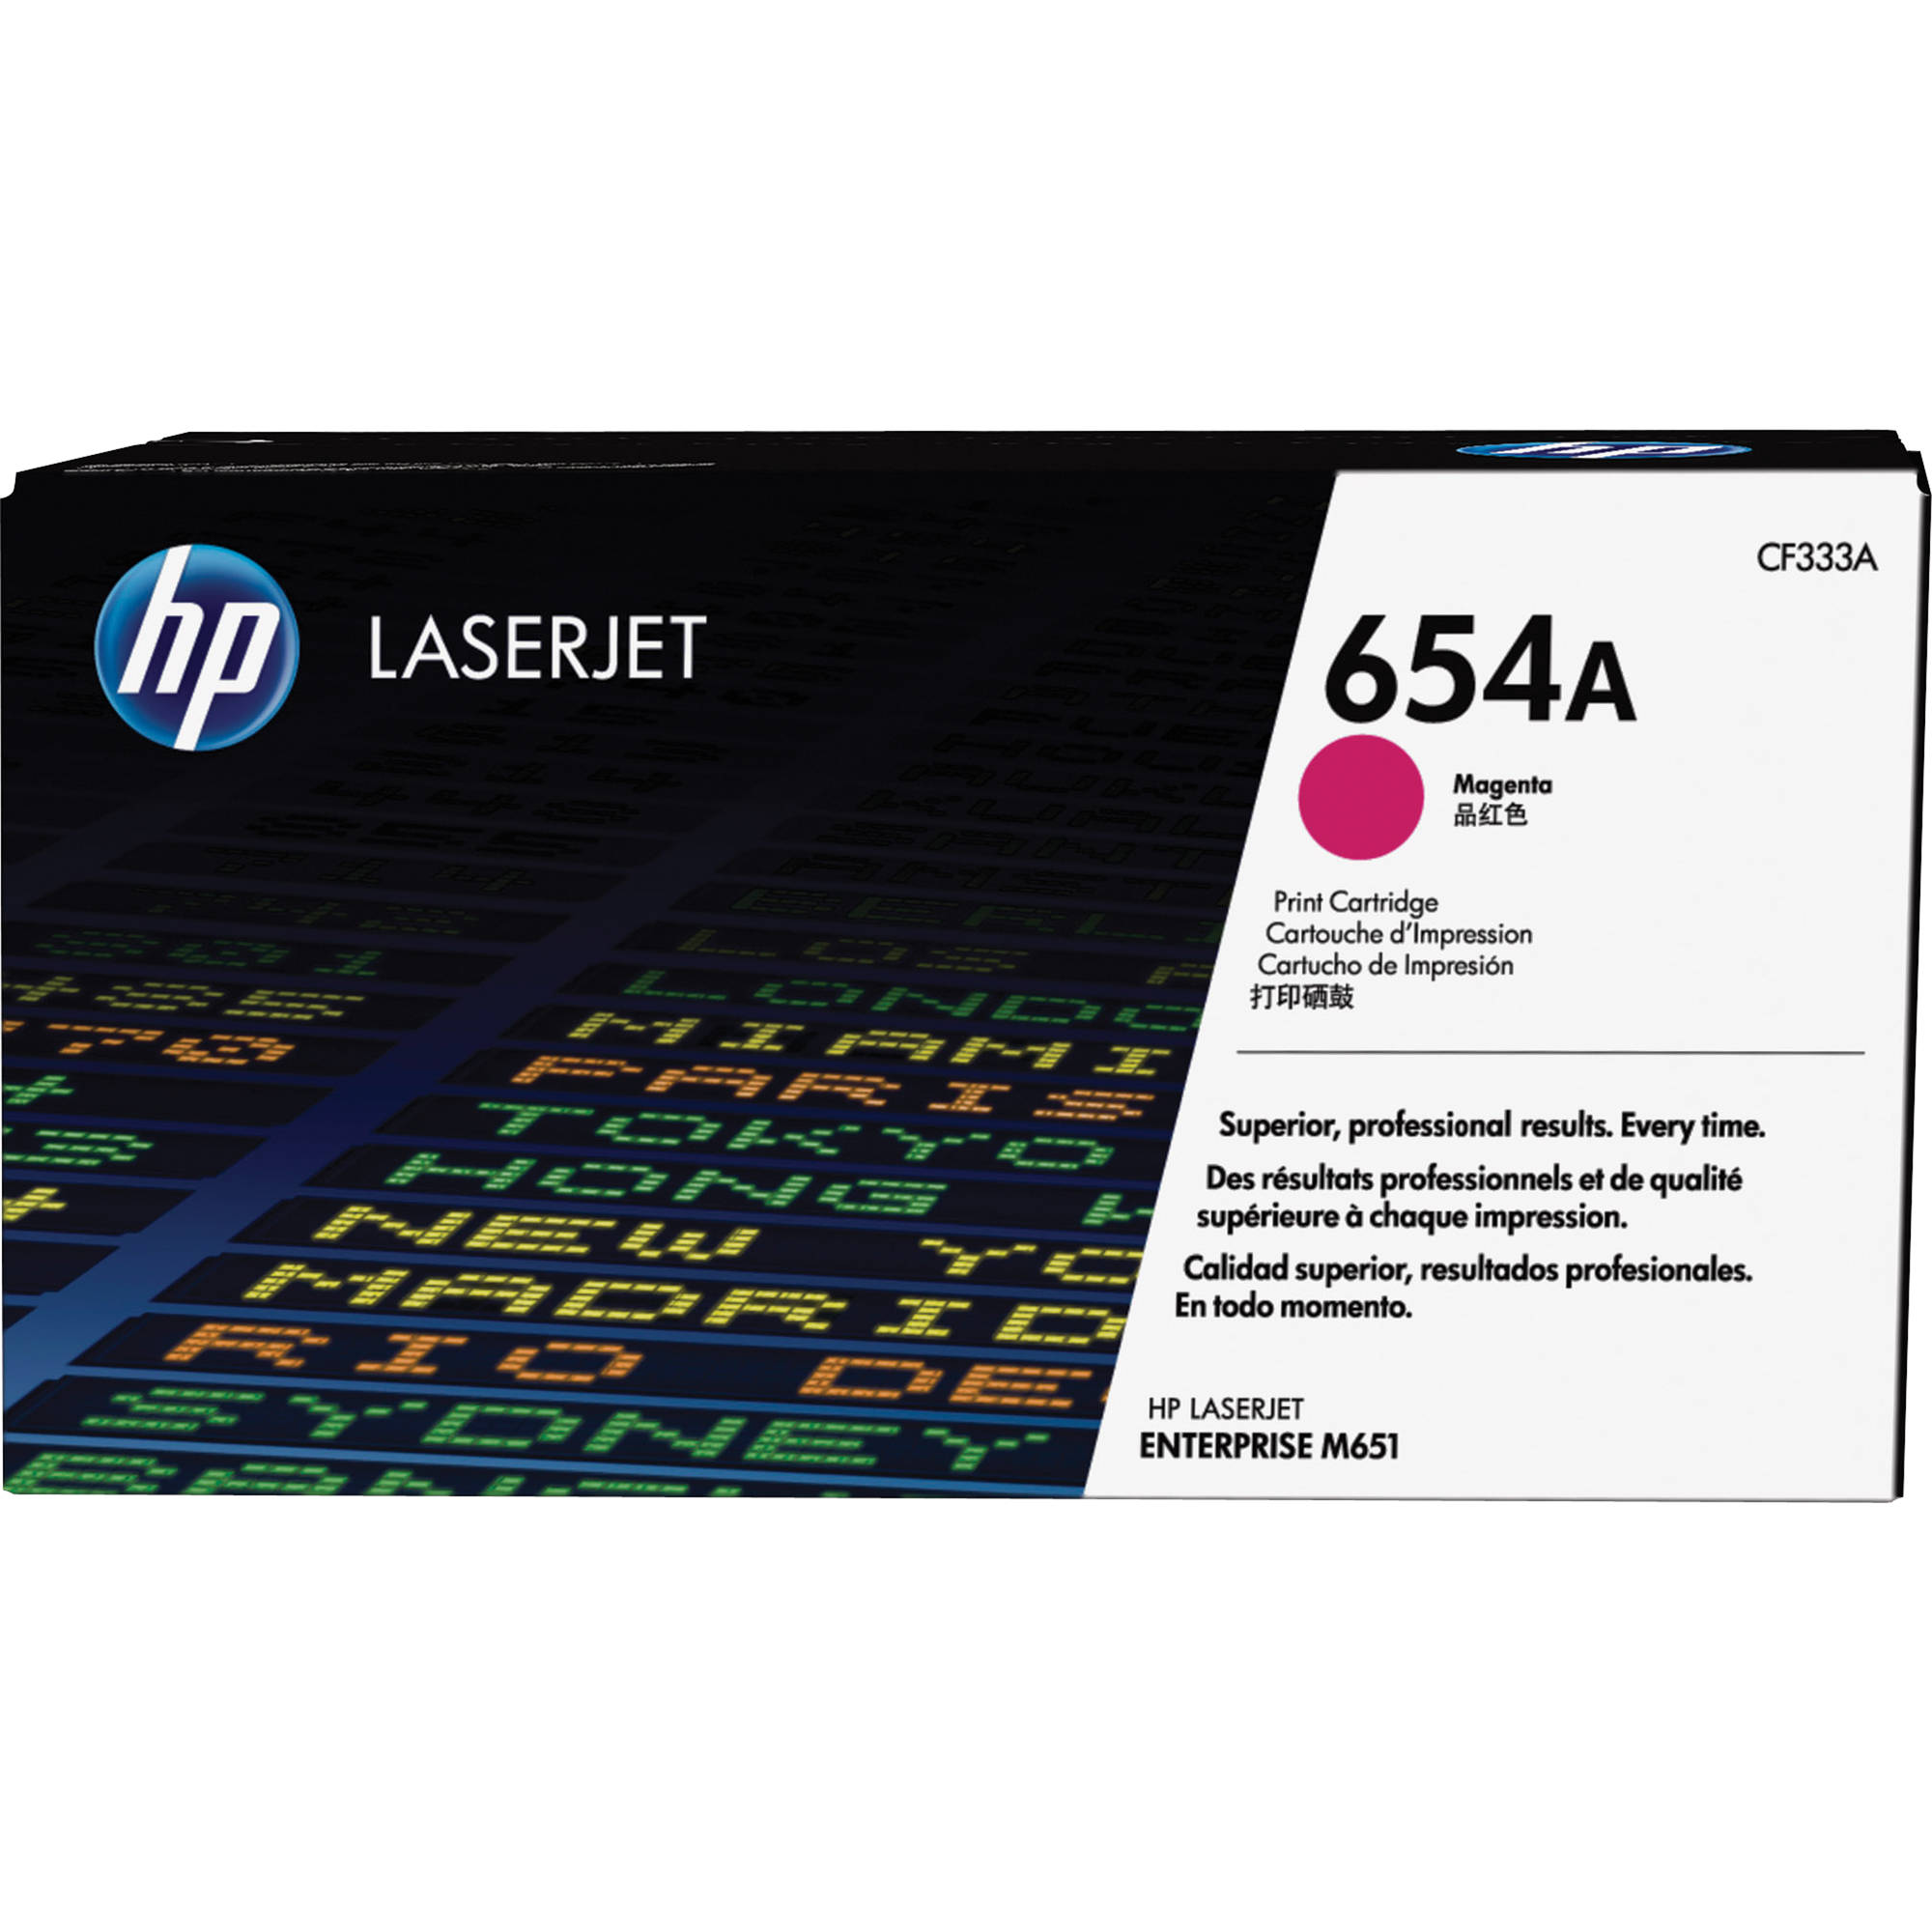 HP 654A Magenta Toner Cartridge CF333A